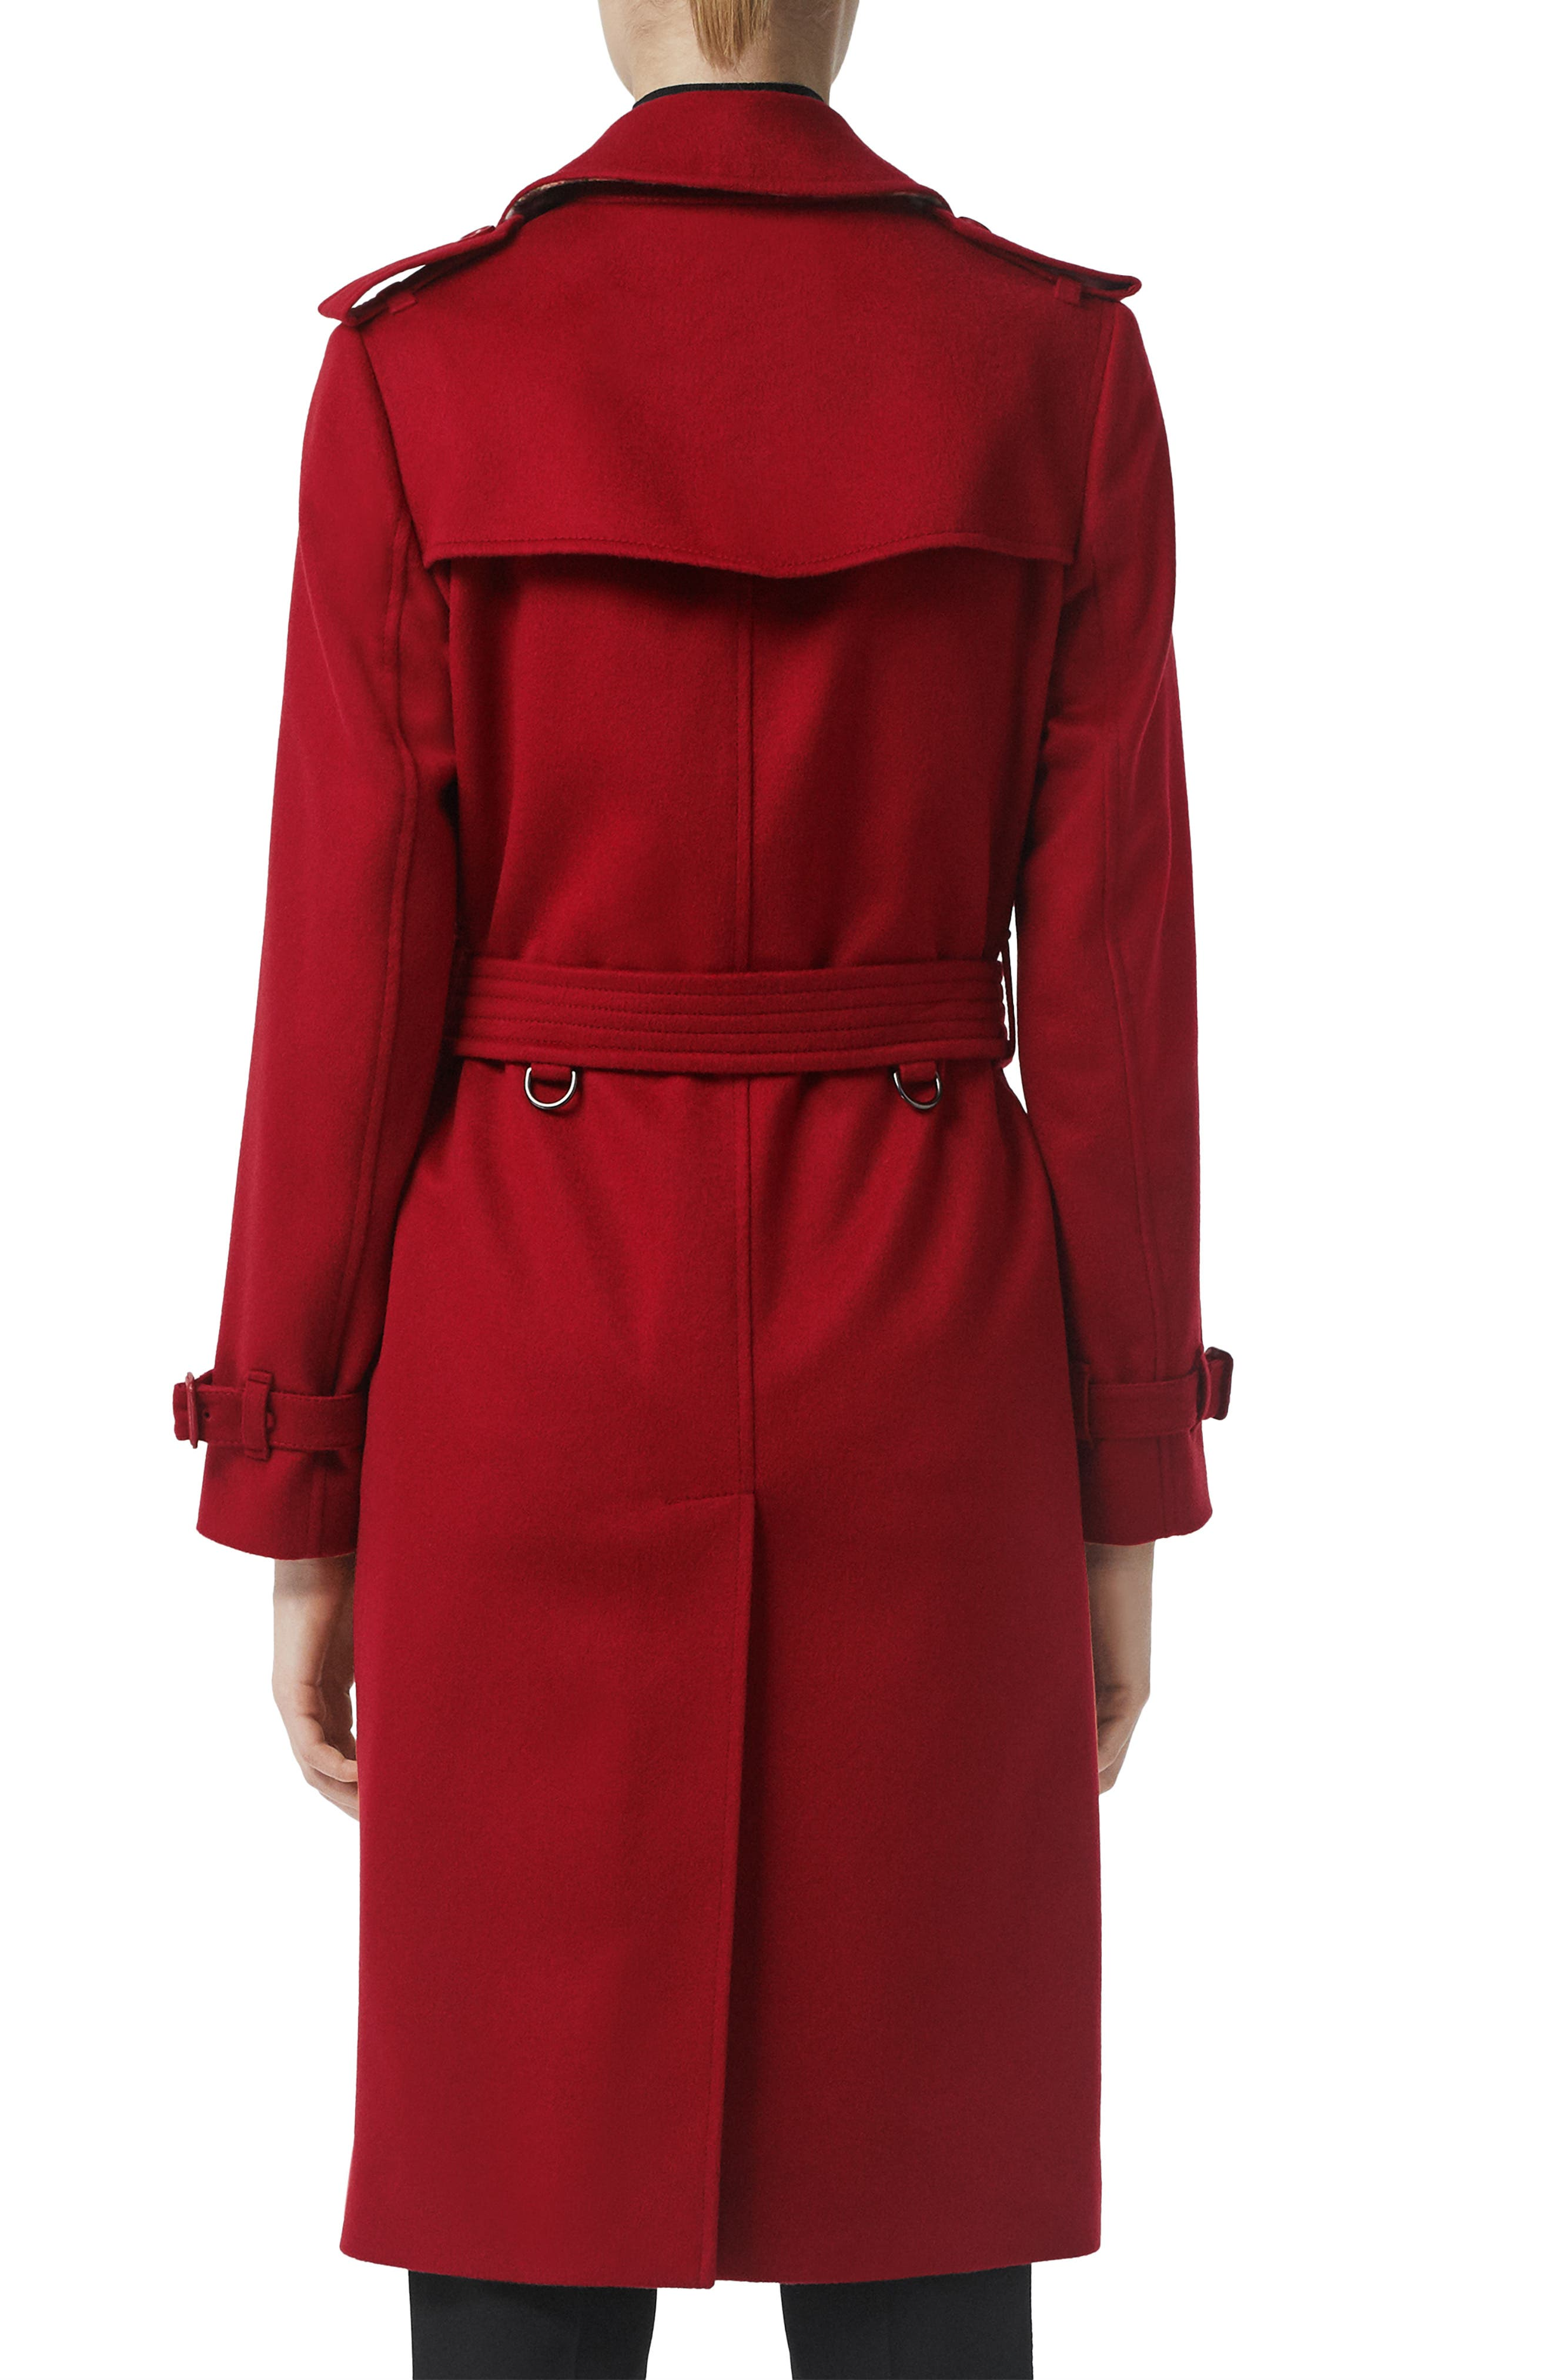 Kensington Cashmere Trench Coat,                             Alternate thumbnail 2, color,                             PARADE RED